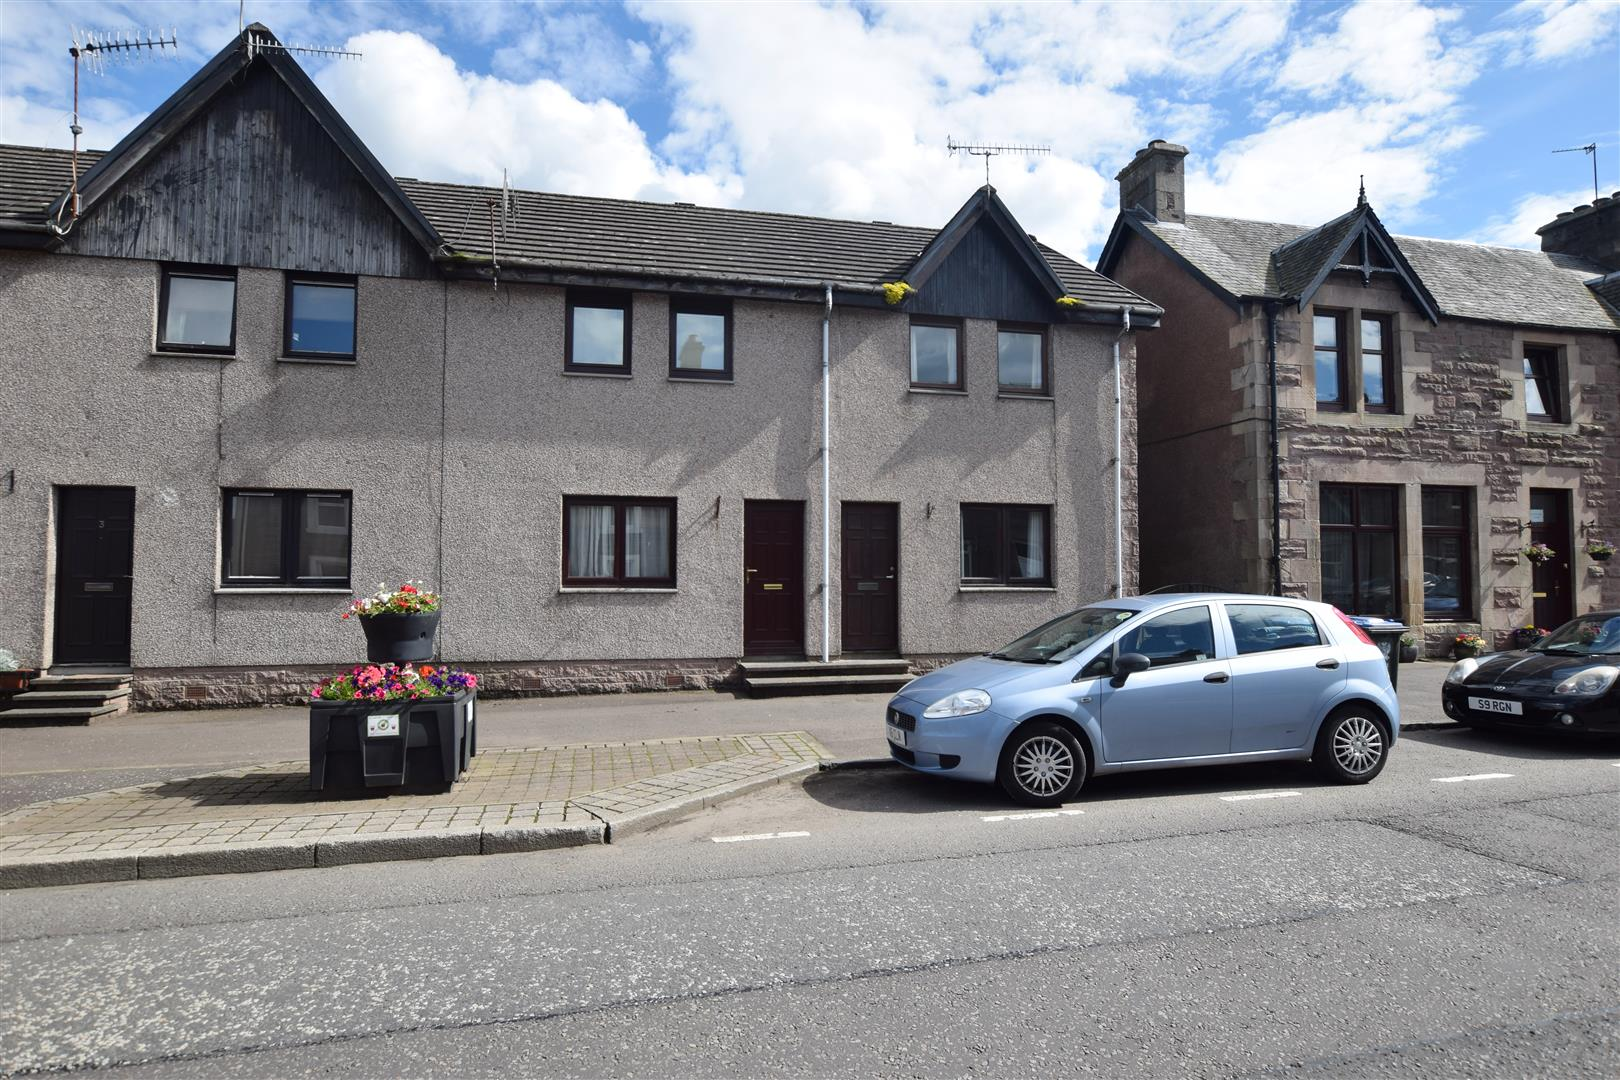 1, Clincart Cottages, Moray Street, Blackford, Perthshire, PH4 1QF, UK